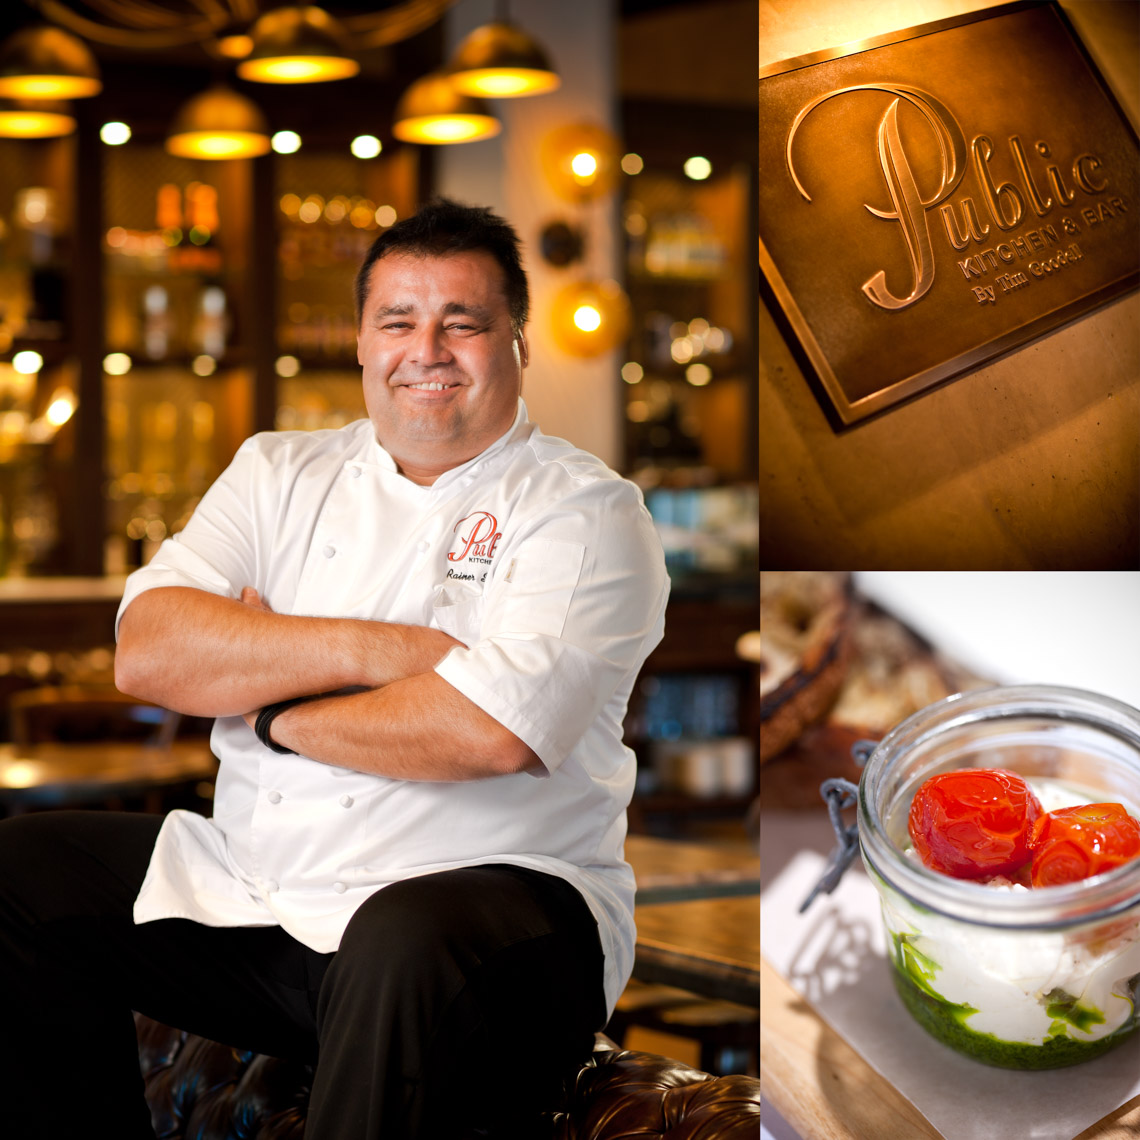 Los Angeles Photographer | Dana Hursey Photography | Top Chef Photography | Rainer Schwarz - Public